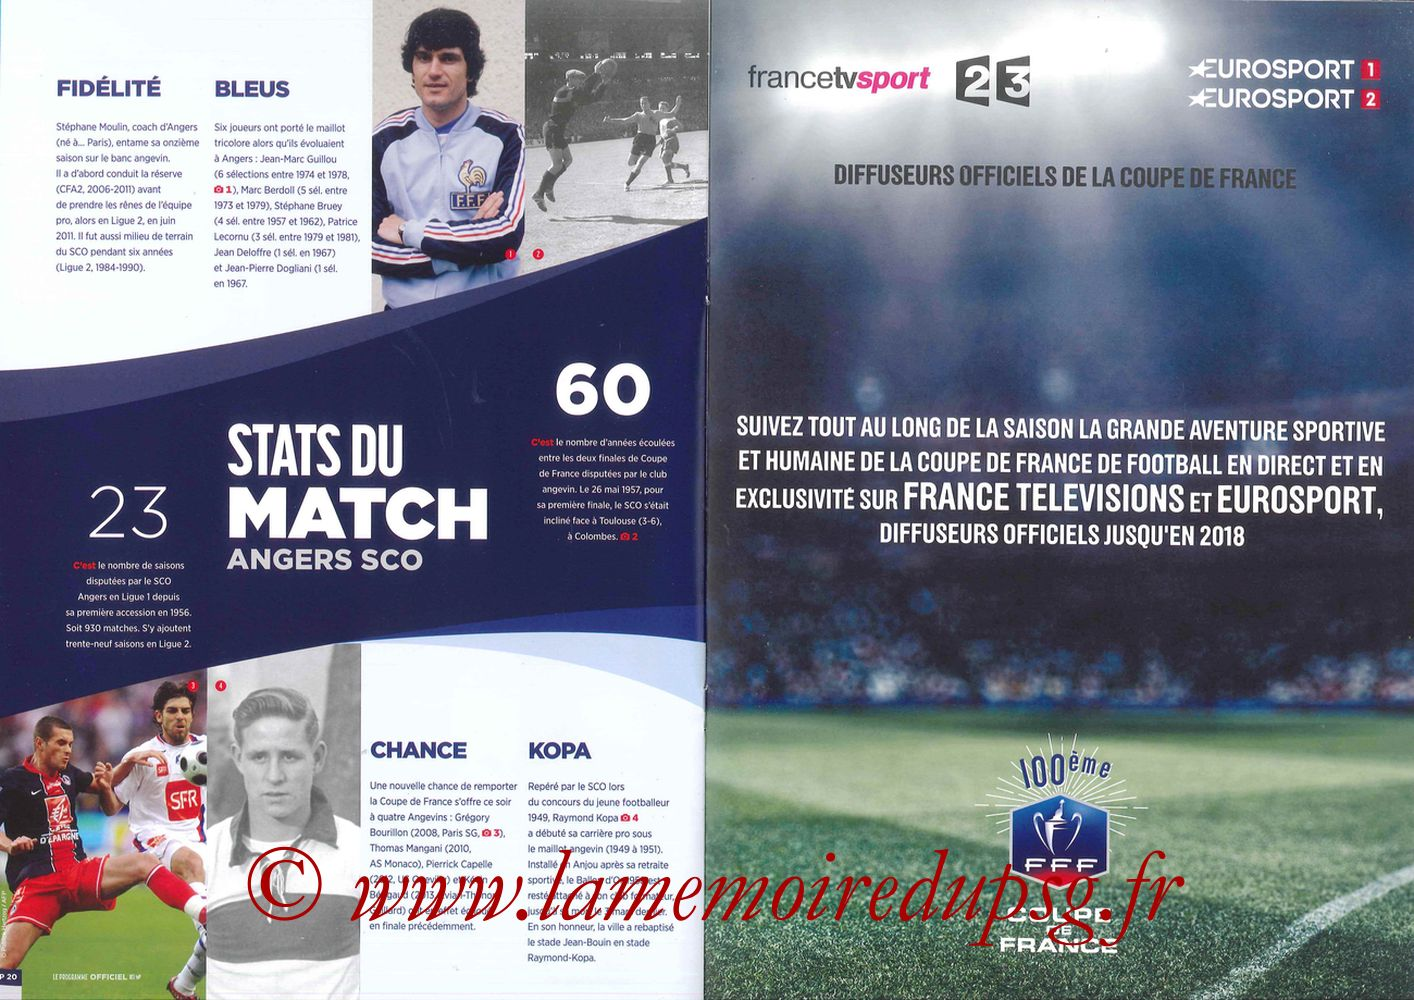 2017-05-27  Angers-PSG (Finale CF à Saint-Denis, Programme officiel) - Pages 20 et 21